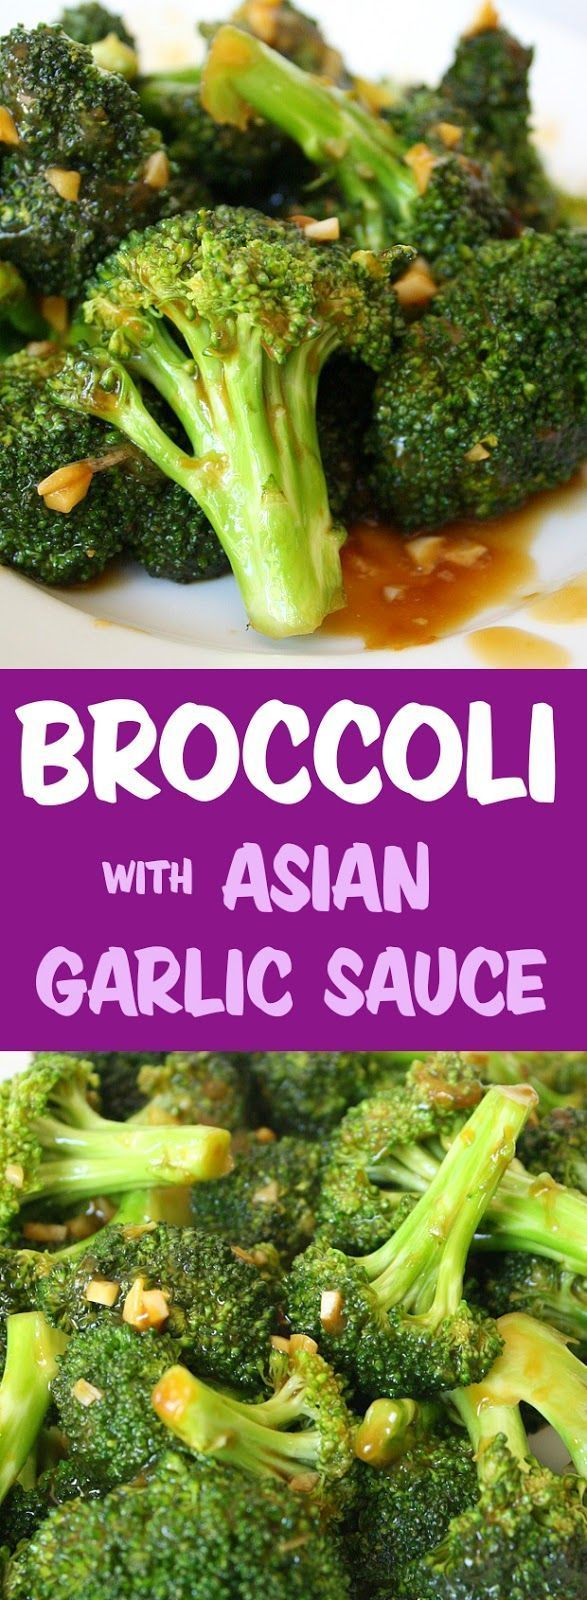 Broccoli with Asian Garlic Sauce -